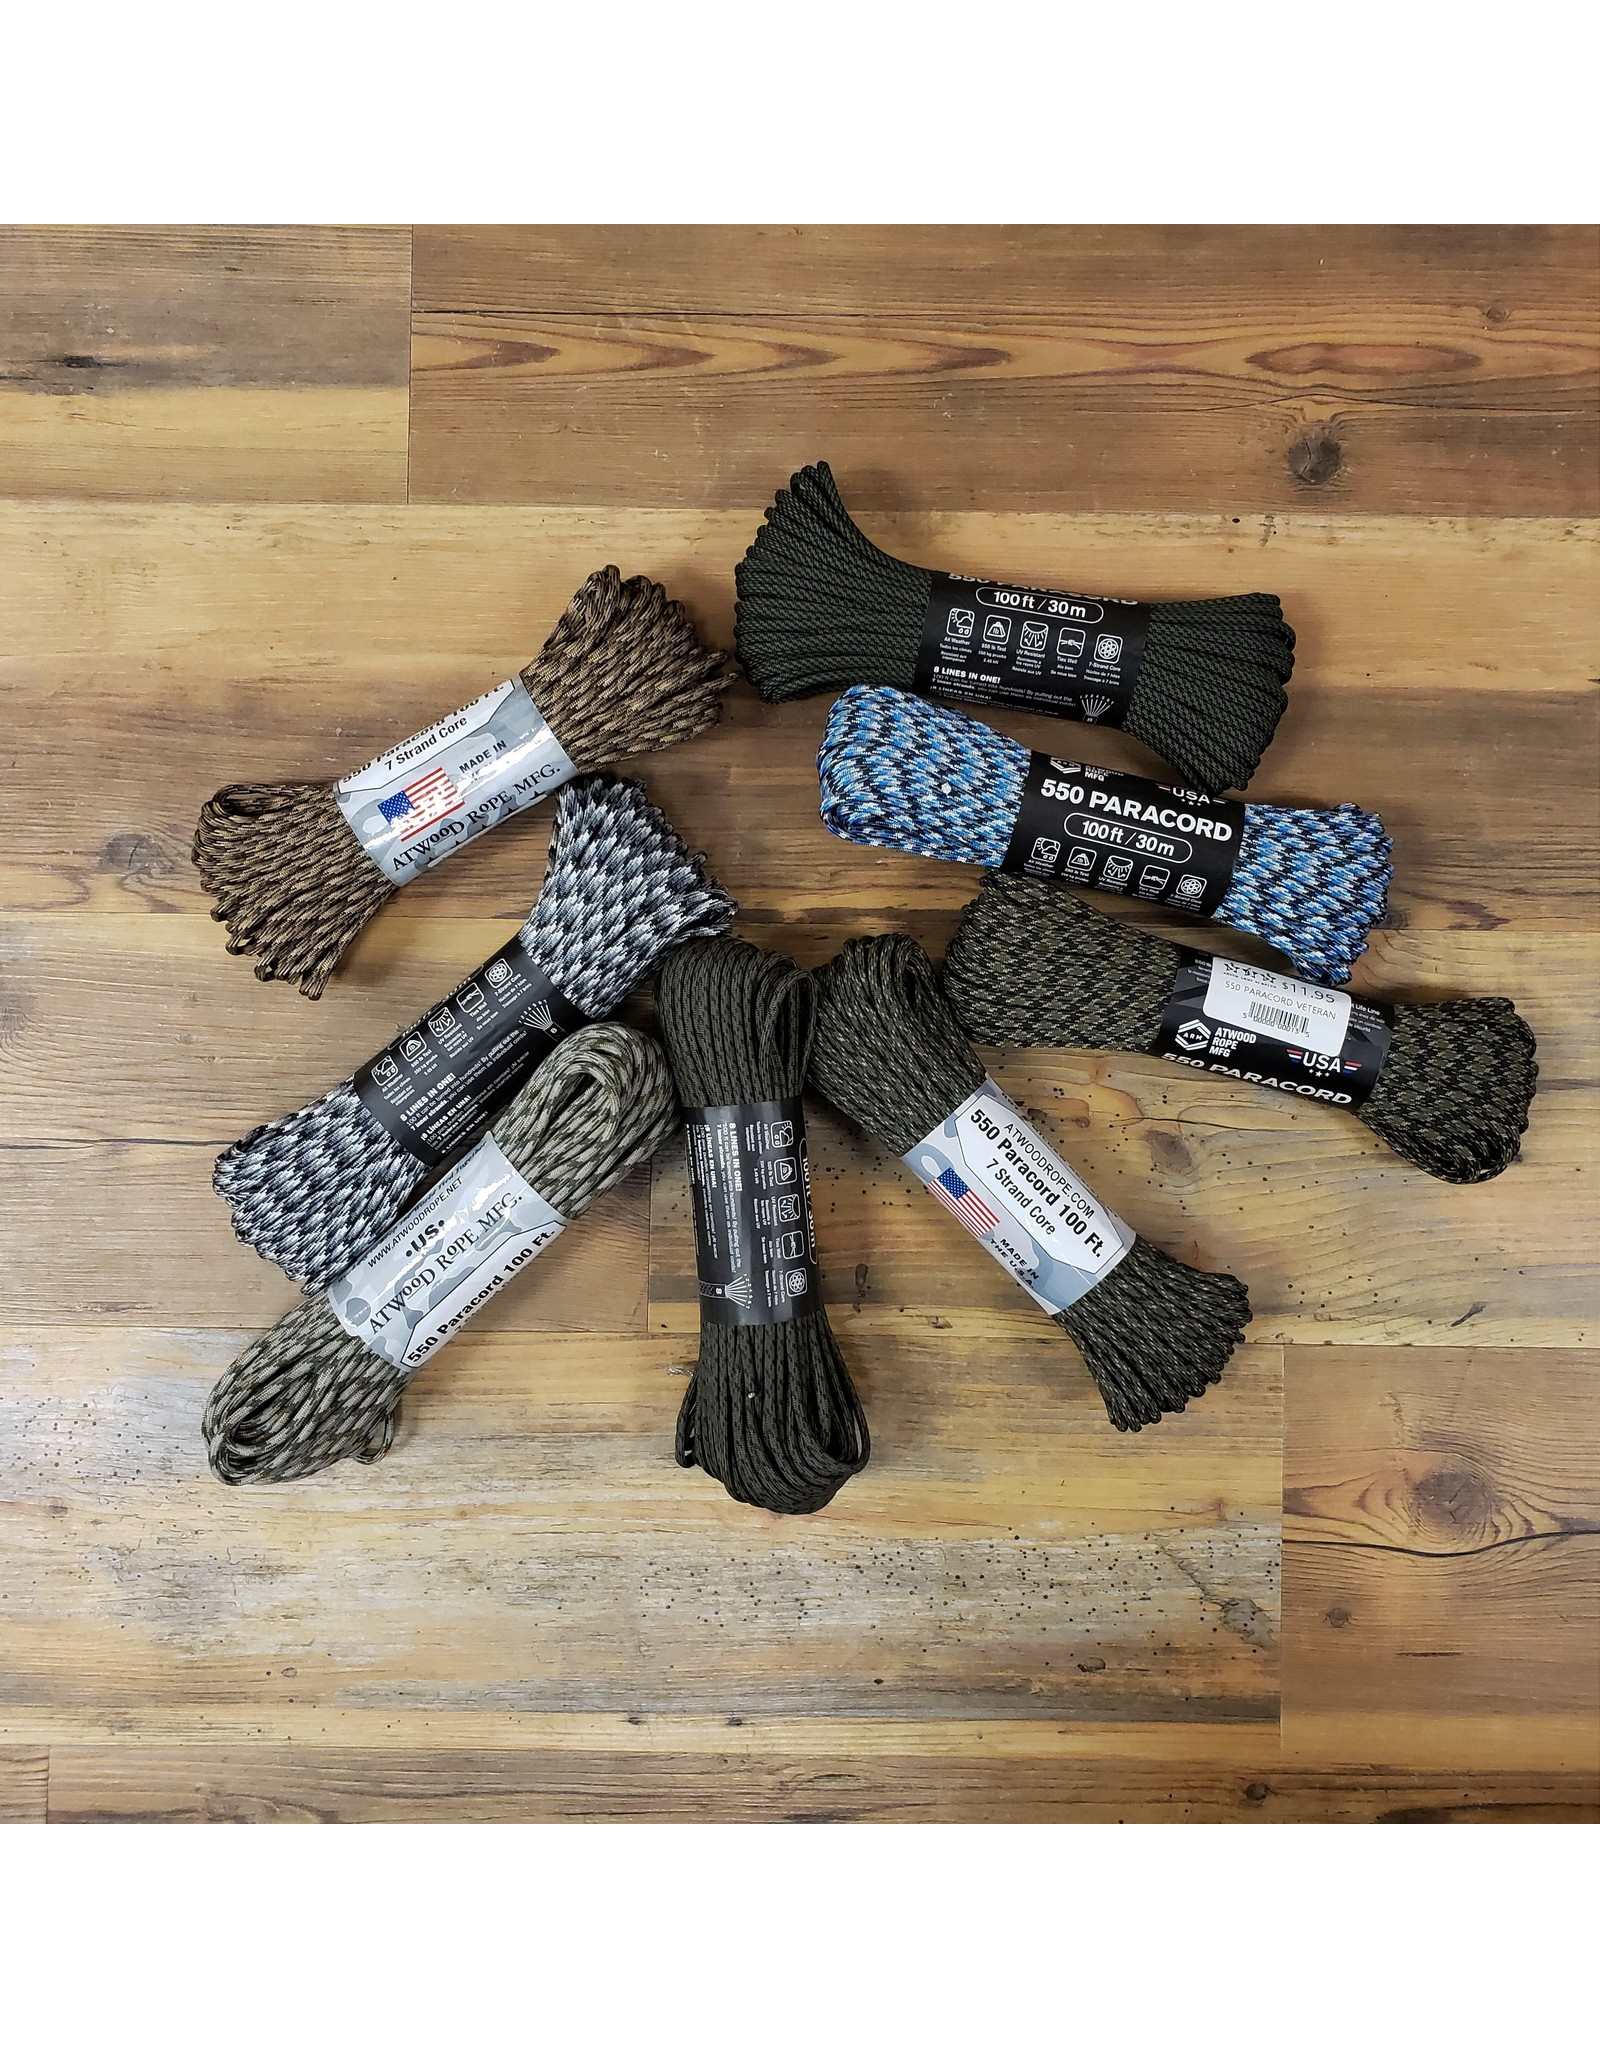 ATWOOD ROPE MFG 550 PARACORD CAMO DESIGNS